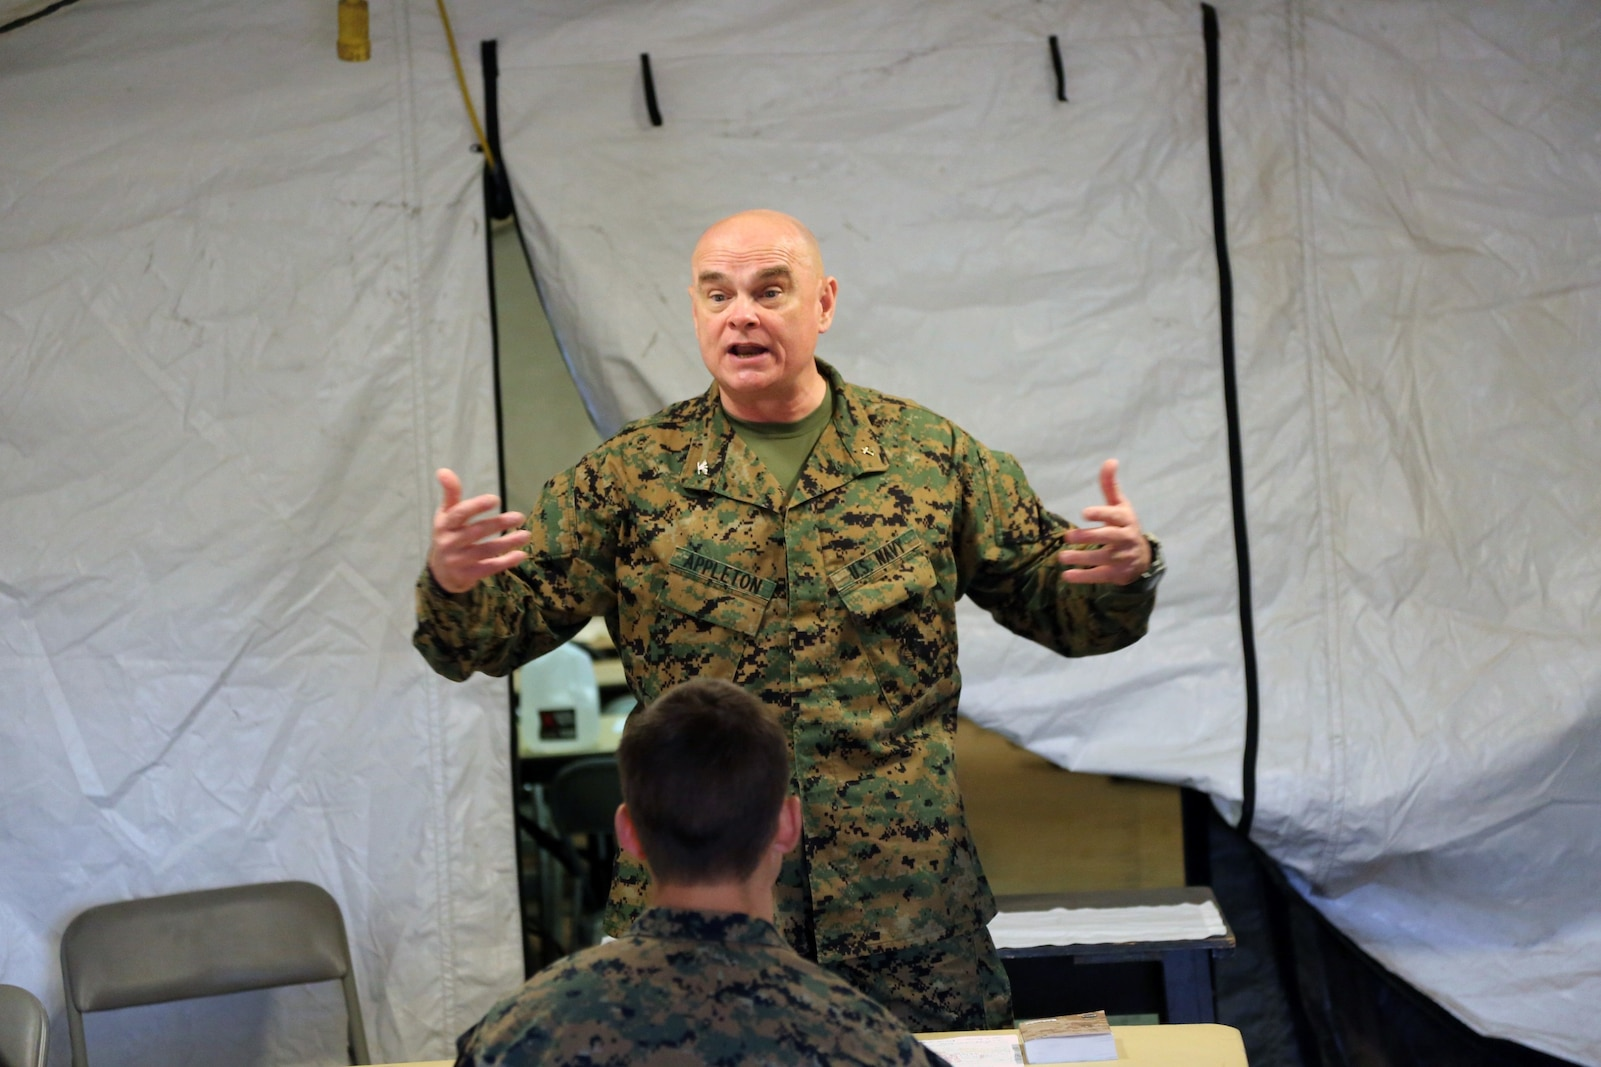 Navy Capt. Bill Appleton, the command chaplain for Headquarters Regiment, 1st Marine Logistics Group, speaks during a sermon to Marines and Sailors during the I Marine Expeditionary Force Exercise aboard Camp Pendleton, Calif., Feb. 22, 2015. Appleton provided Marines and Sailors with a service during the training operation for spiritual support. (Marine Corps photo by Sgt. Cody Haas/ Released)